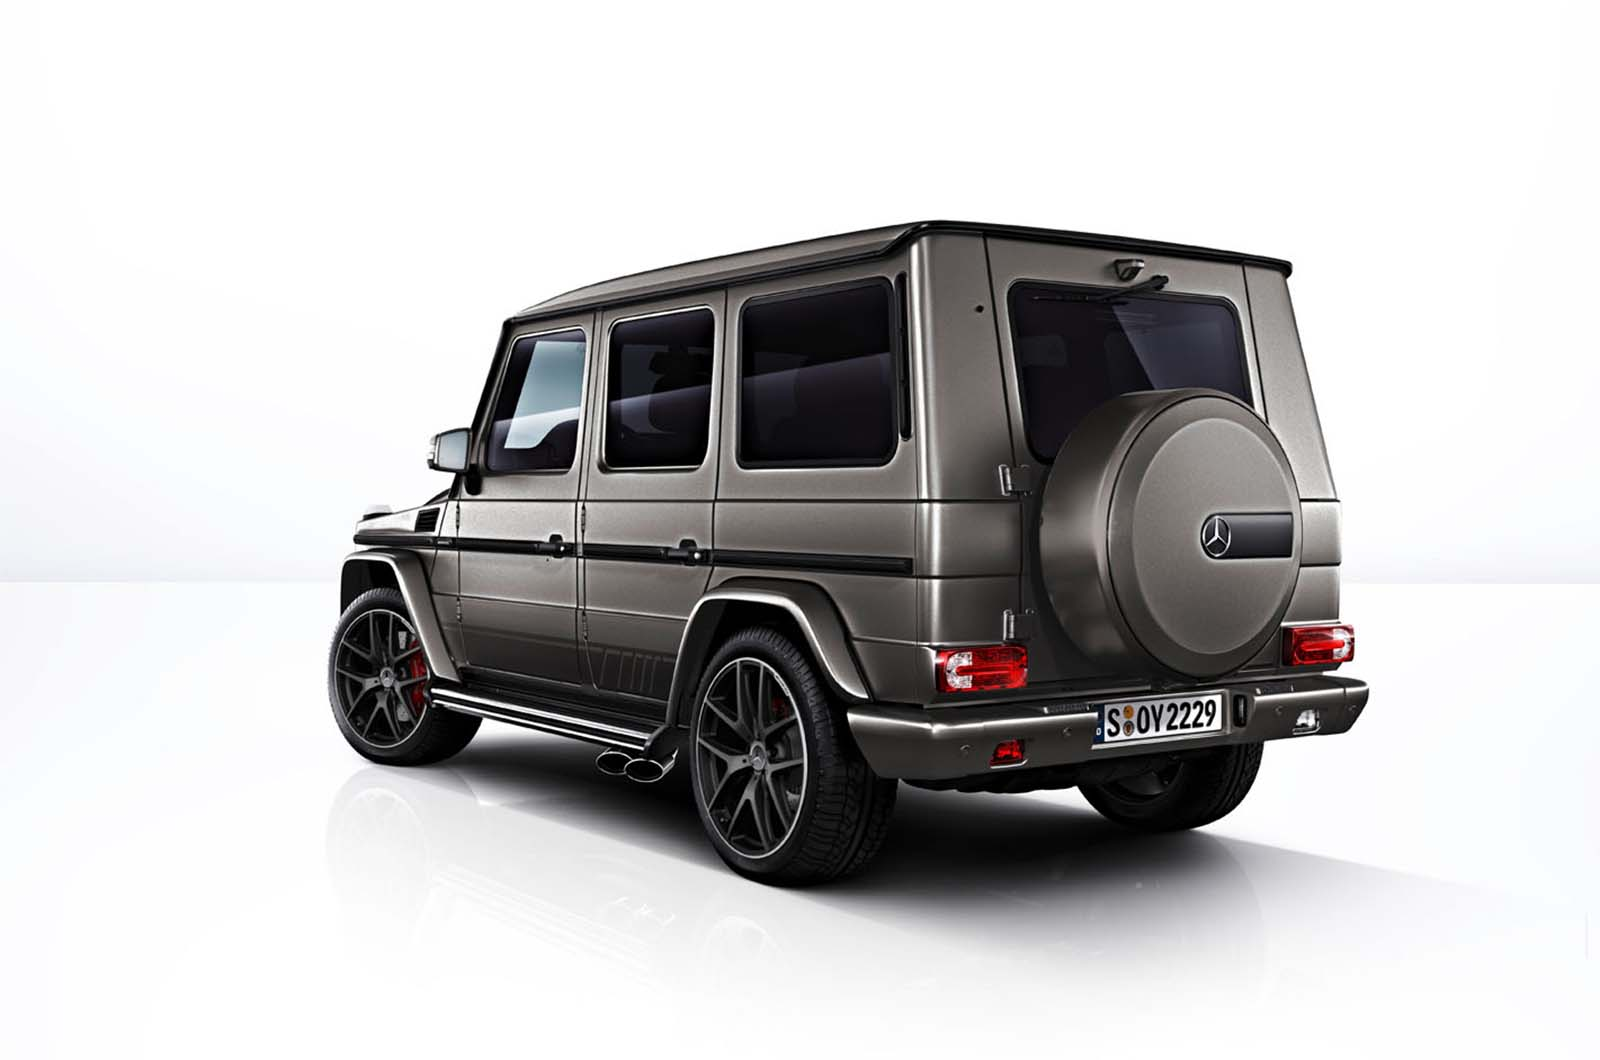 mercedes-benz g-class gets new special editions